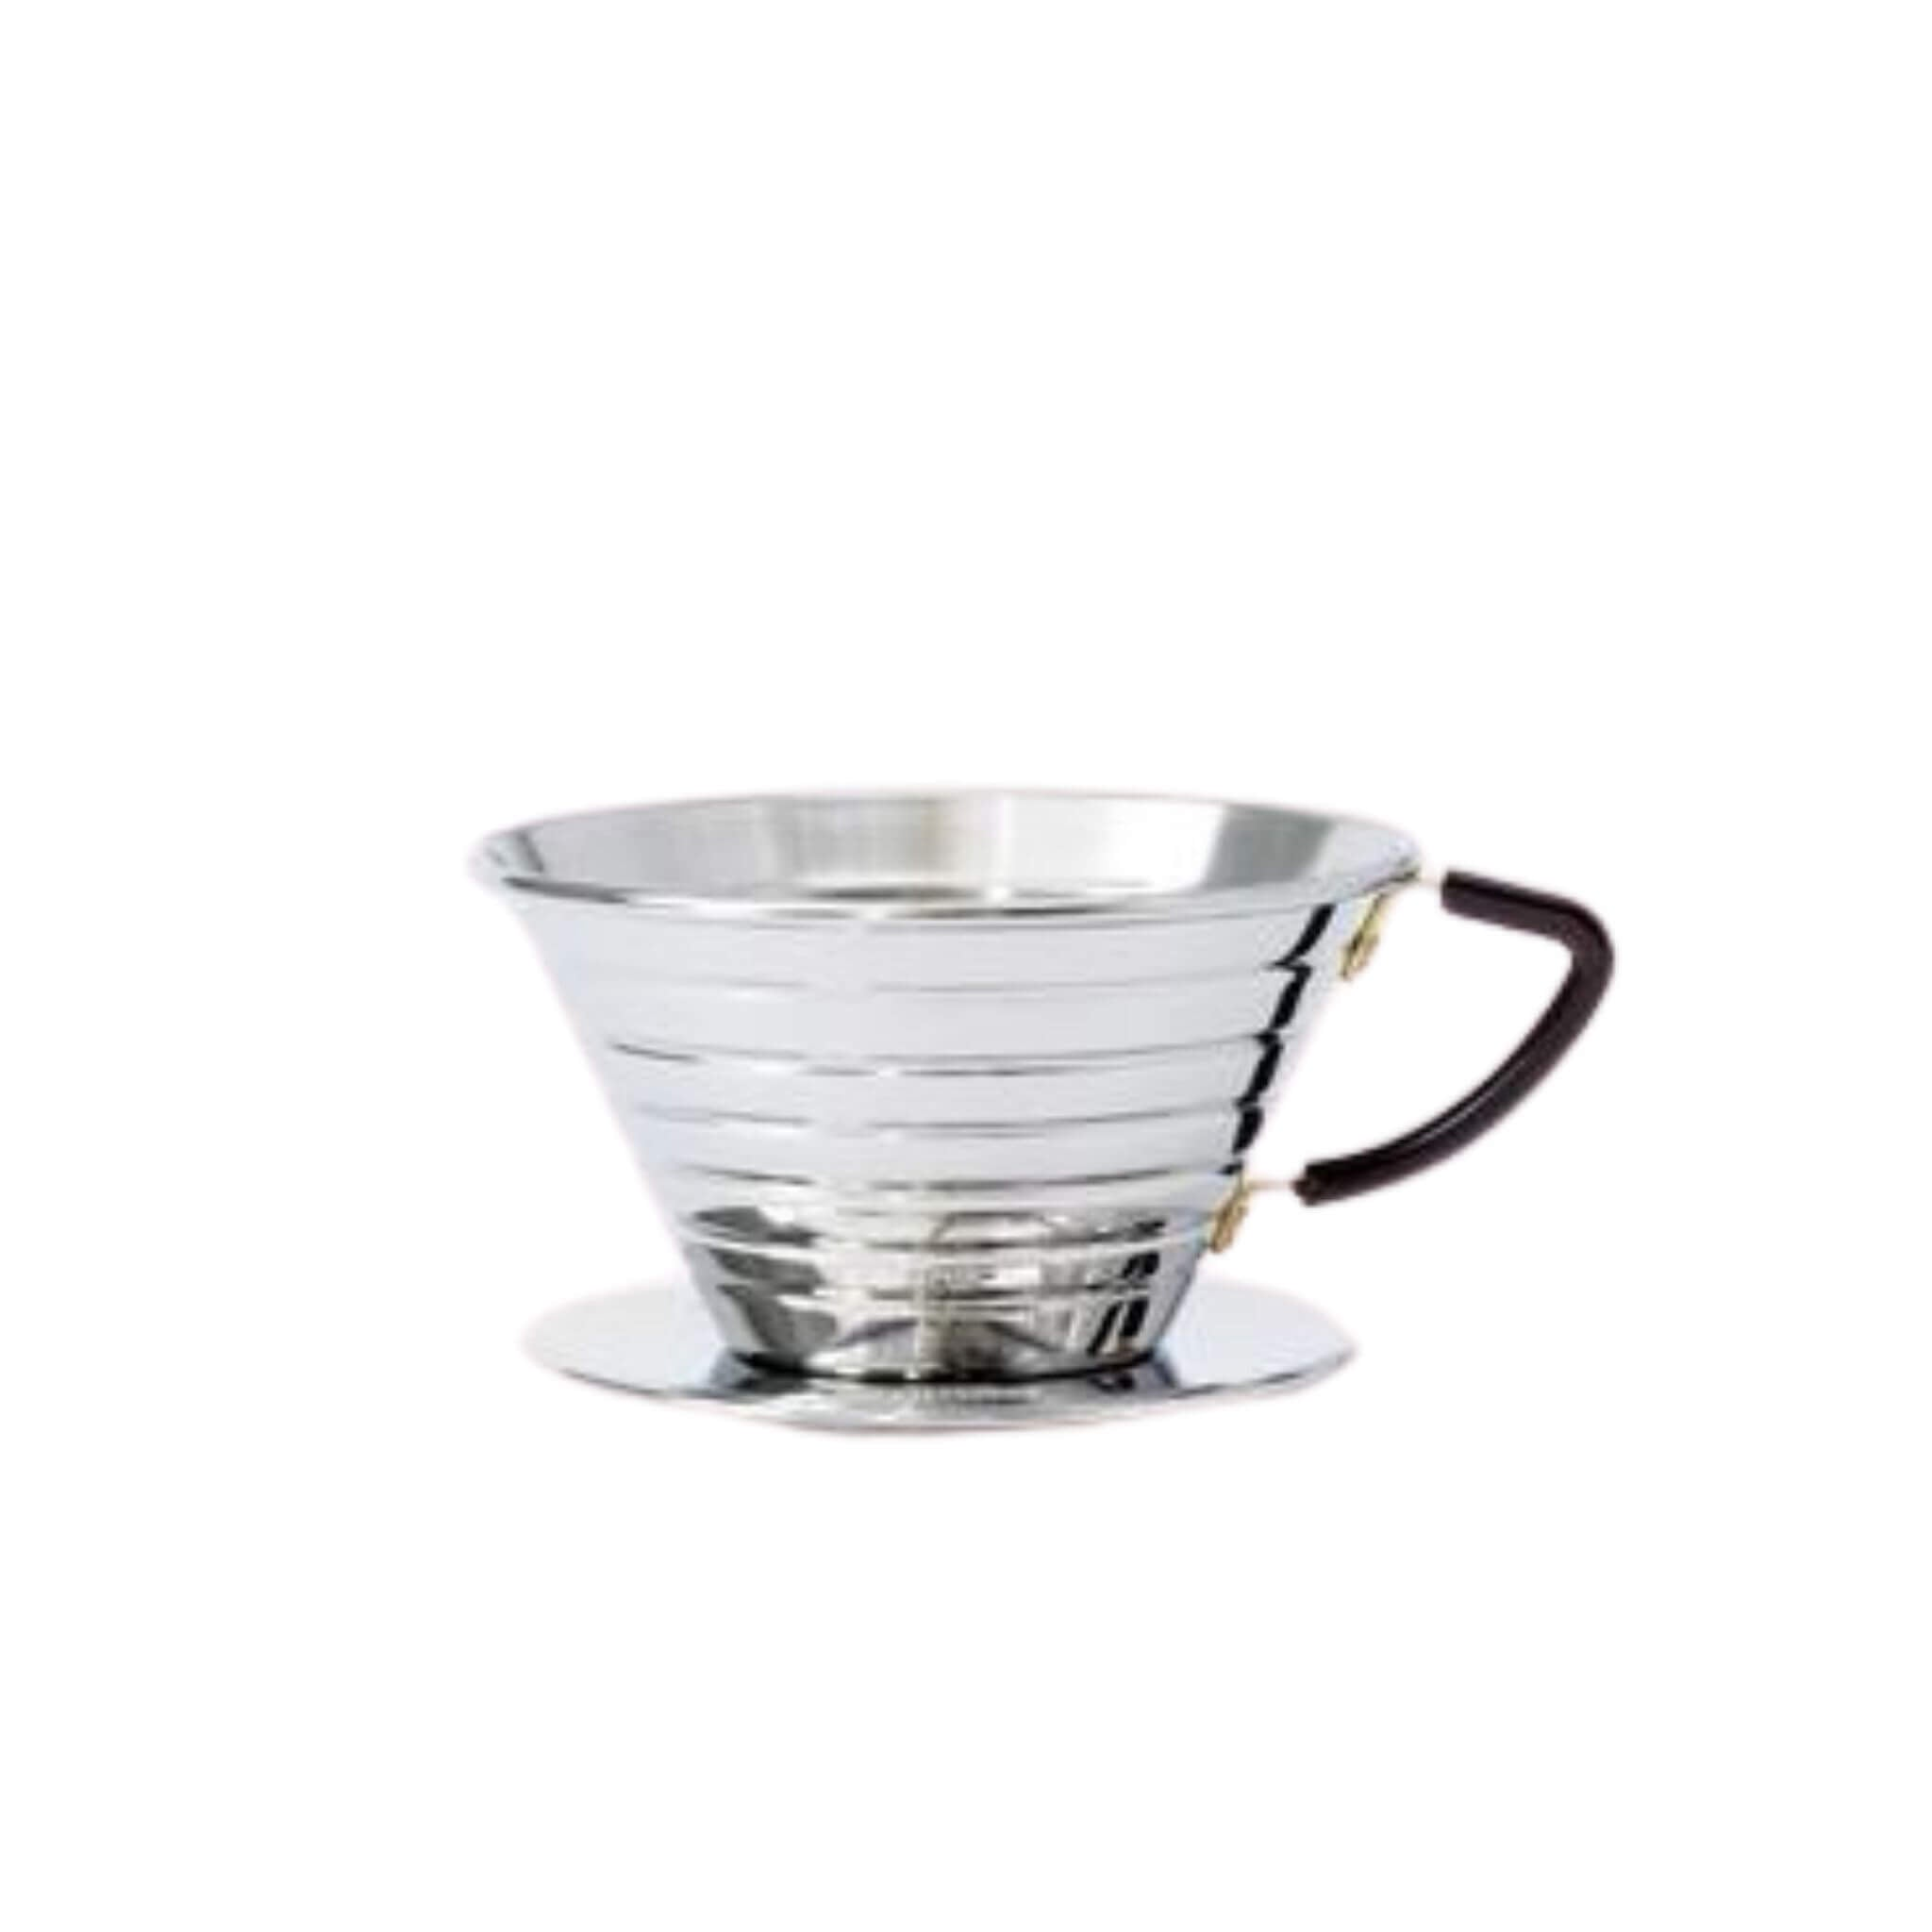 Kalita 155 Stainless Steel Pour Over Coffee Maker